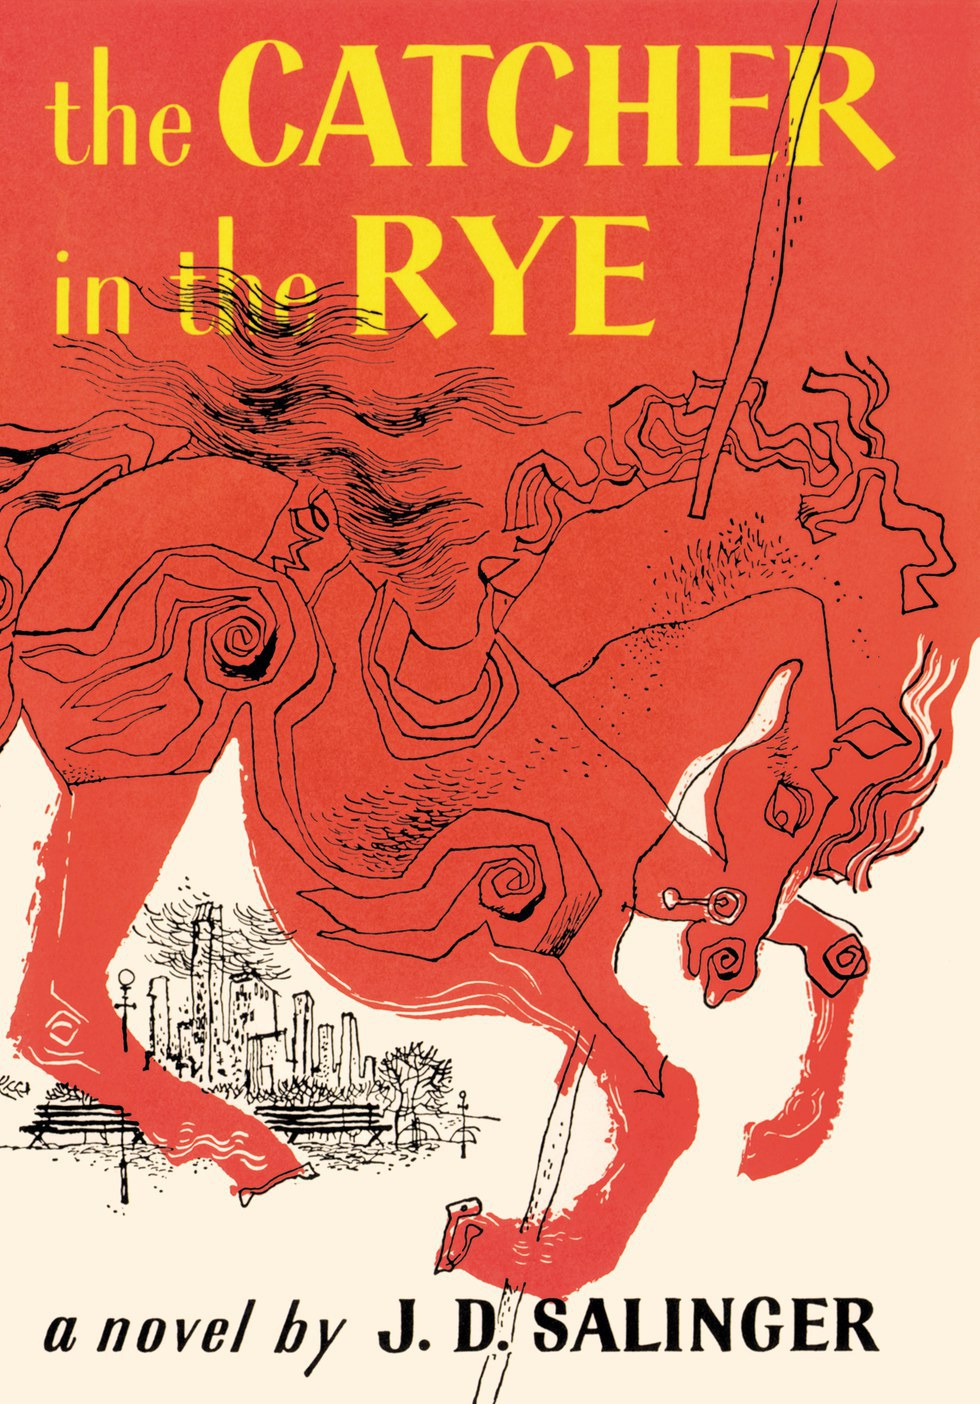 a discussion on holdens narration in the book the catcher in the rye by j d salinger Our reading guide for the catcher in the rye by jd salinger includes a book club discussion guide, book review, plot summary-synopsis and author bio.